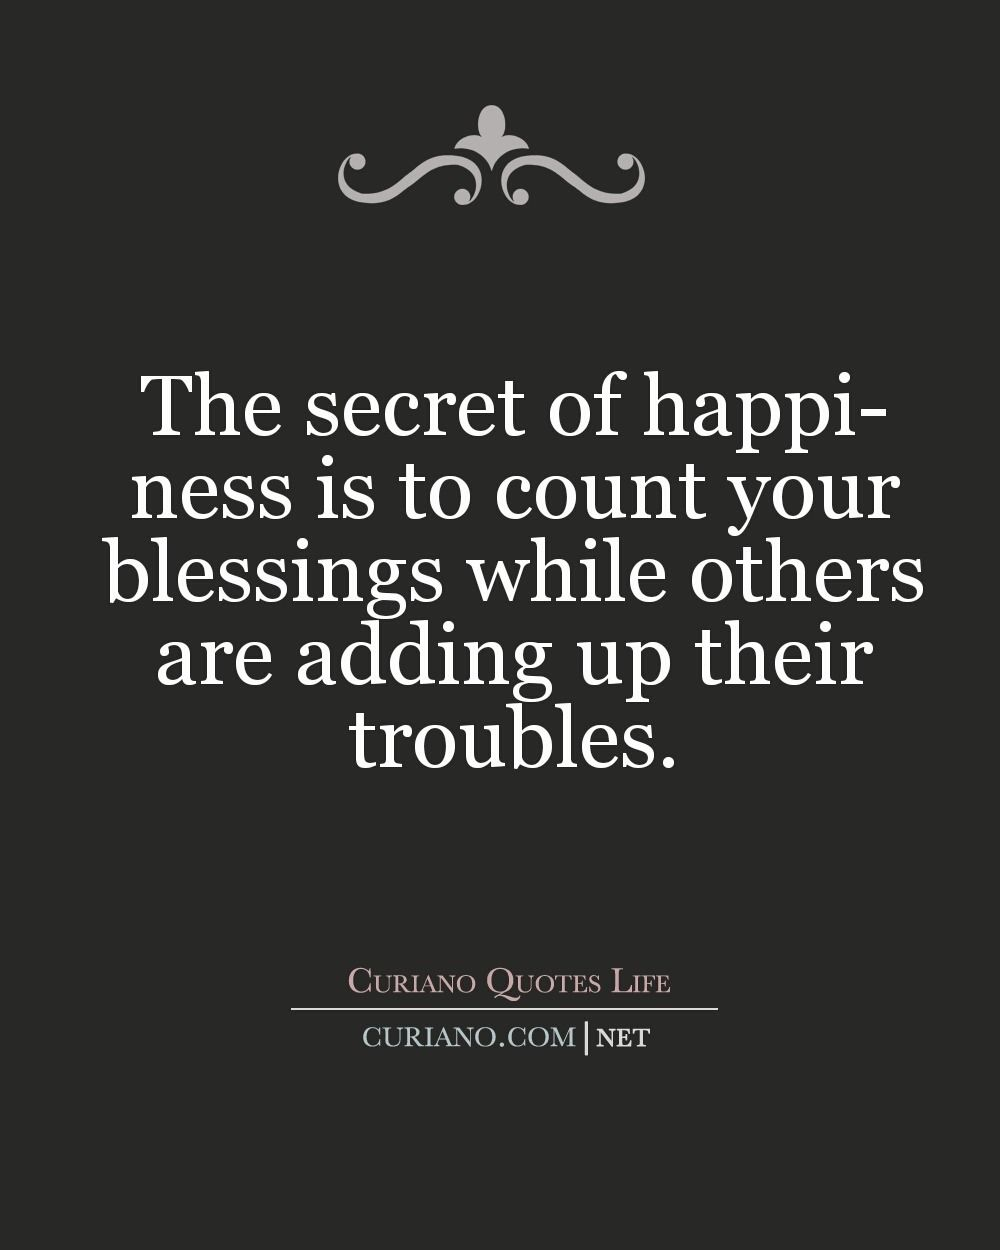 Wisdom Quotes About Life This Blog Curiano Quotes Life Shows Quotes Best Life Quote